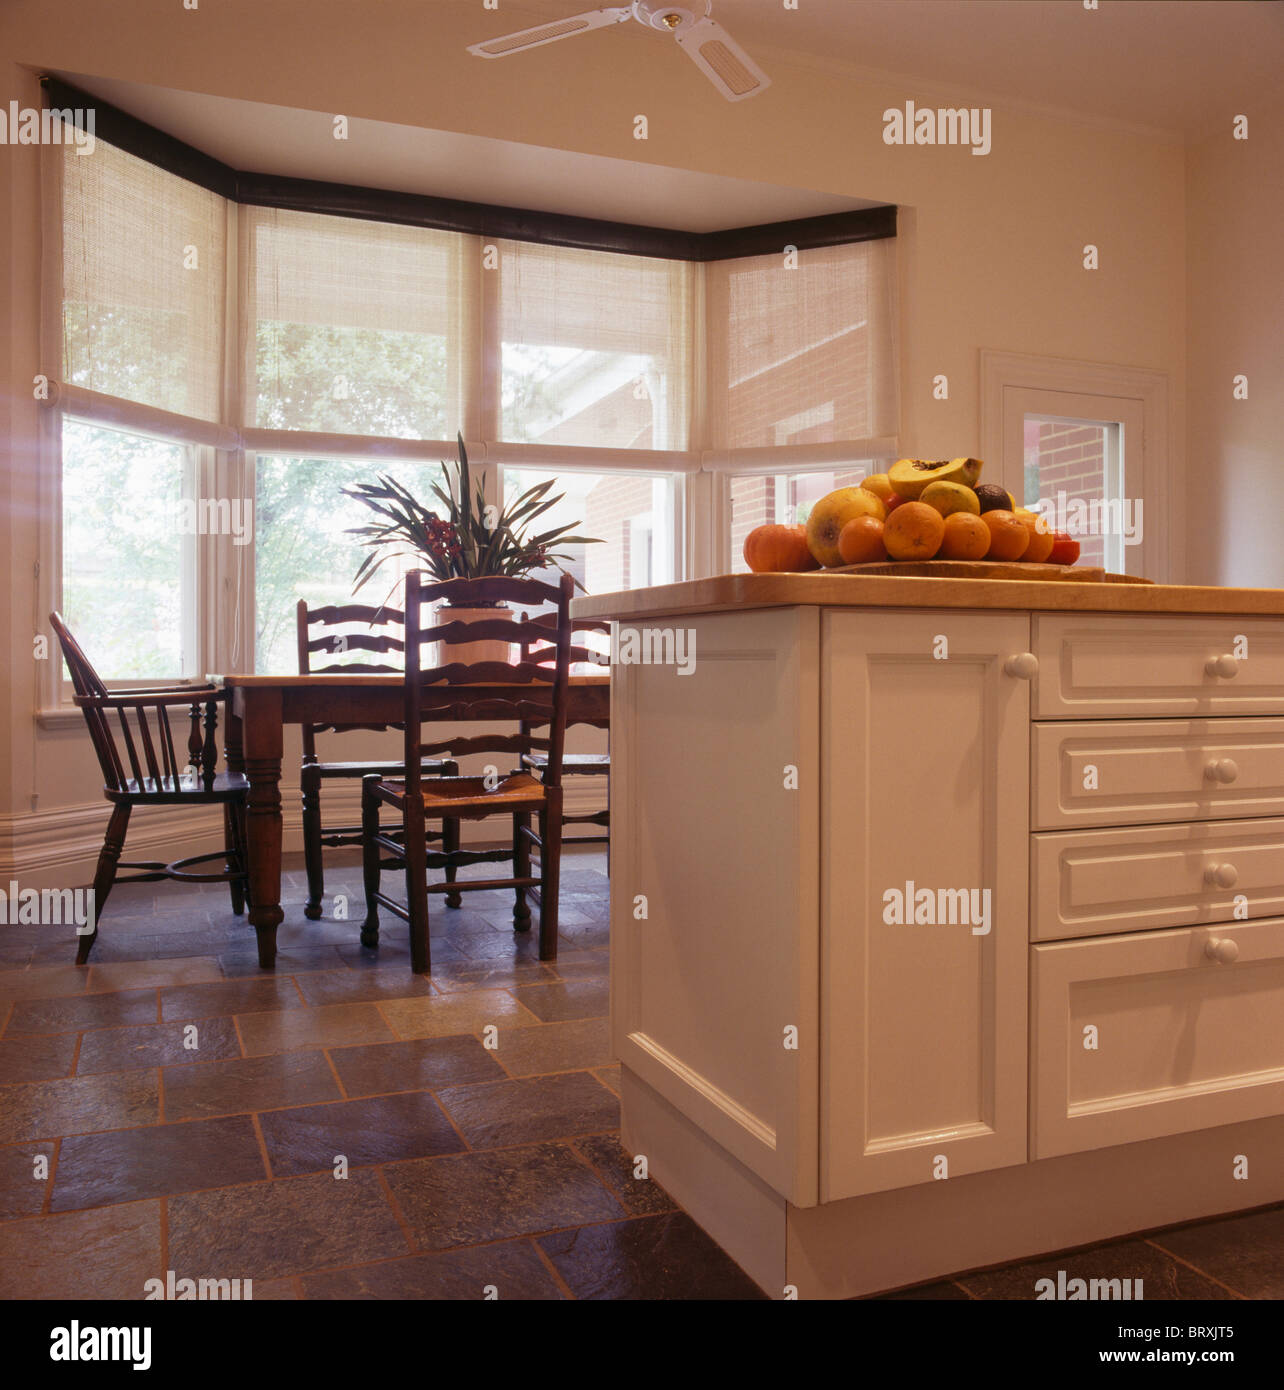 Interiors Traditional Kitchens Dining Rooms Stockfotos & Interiors ...